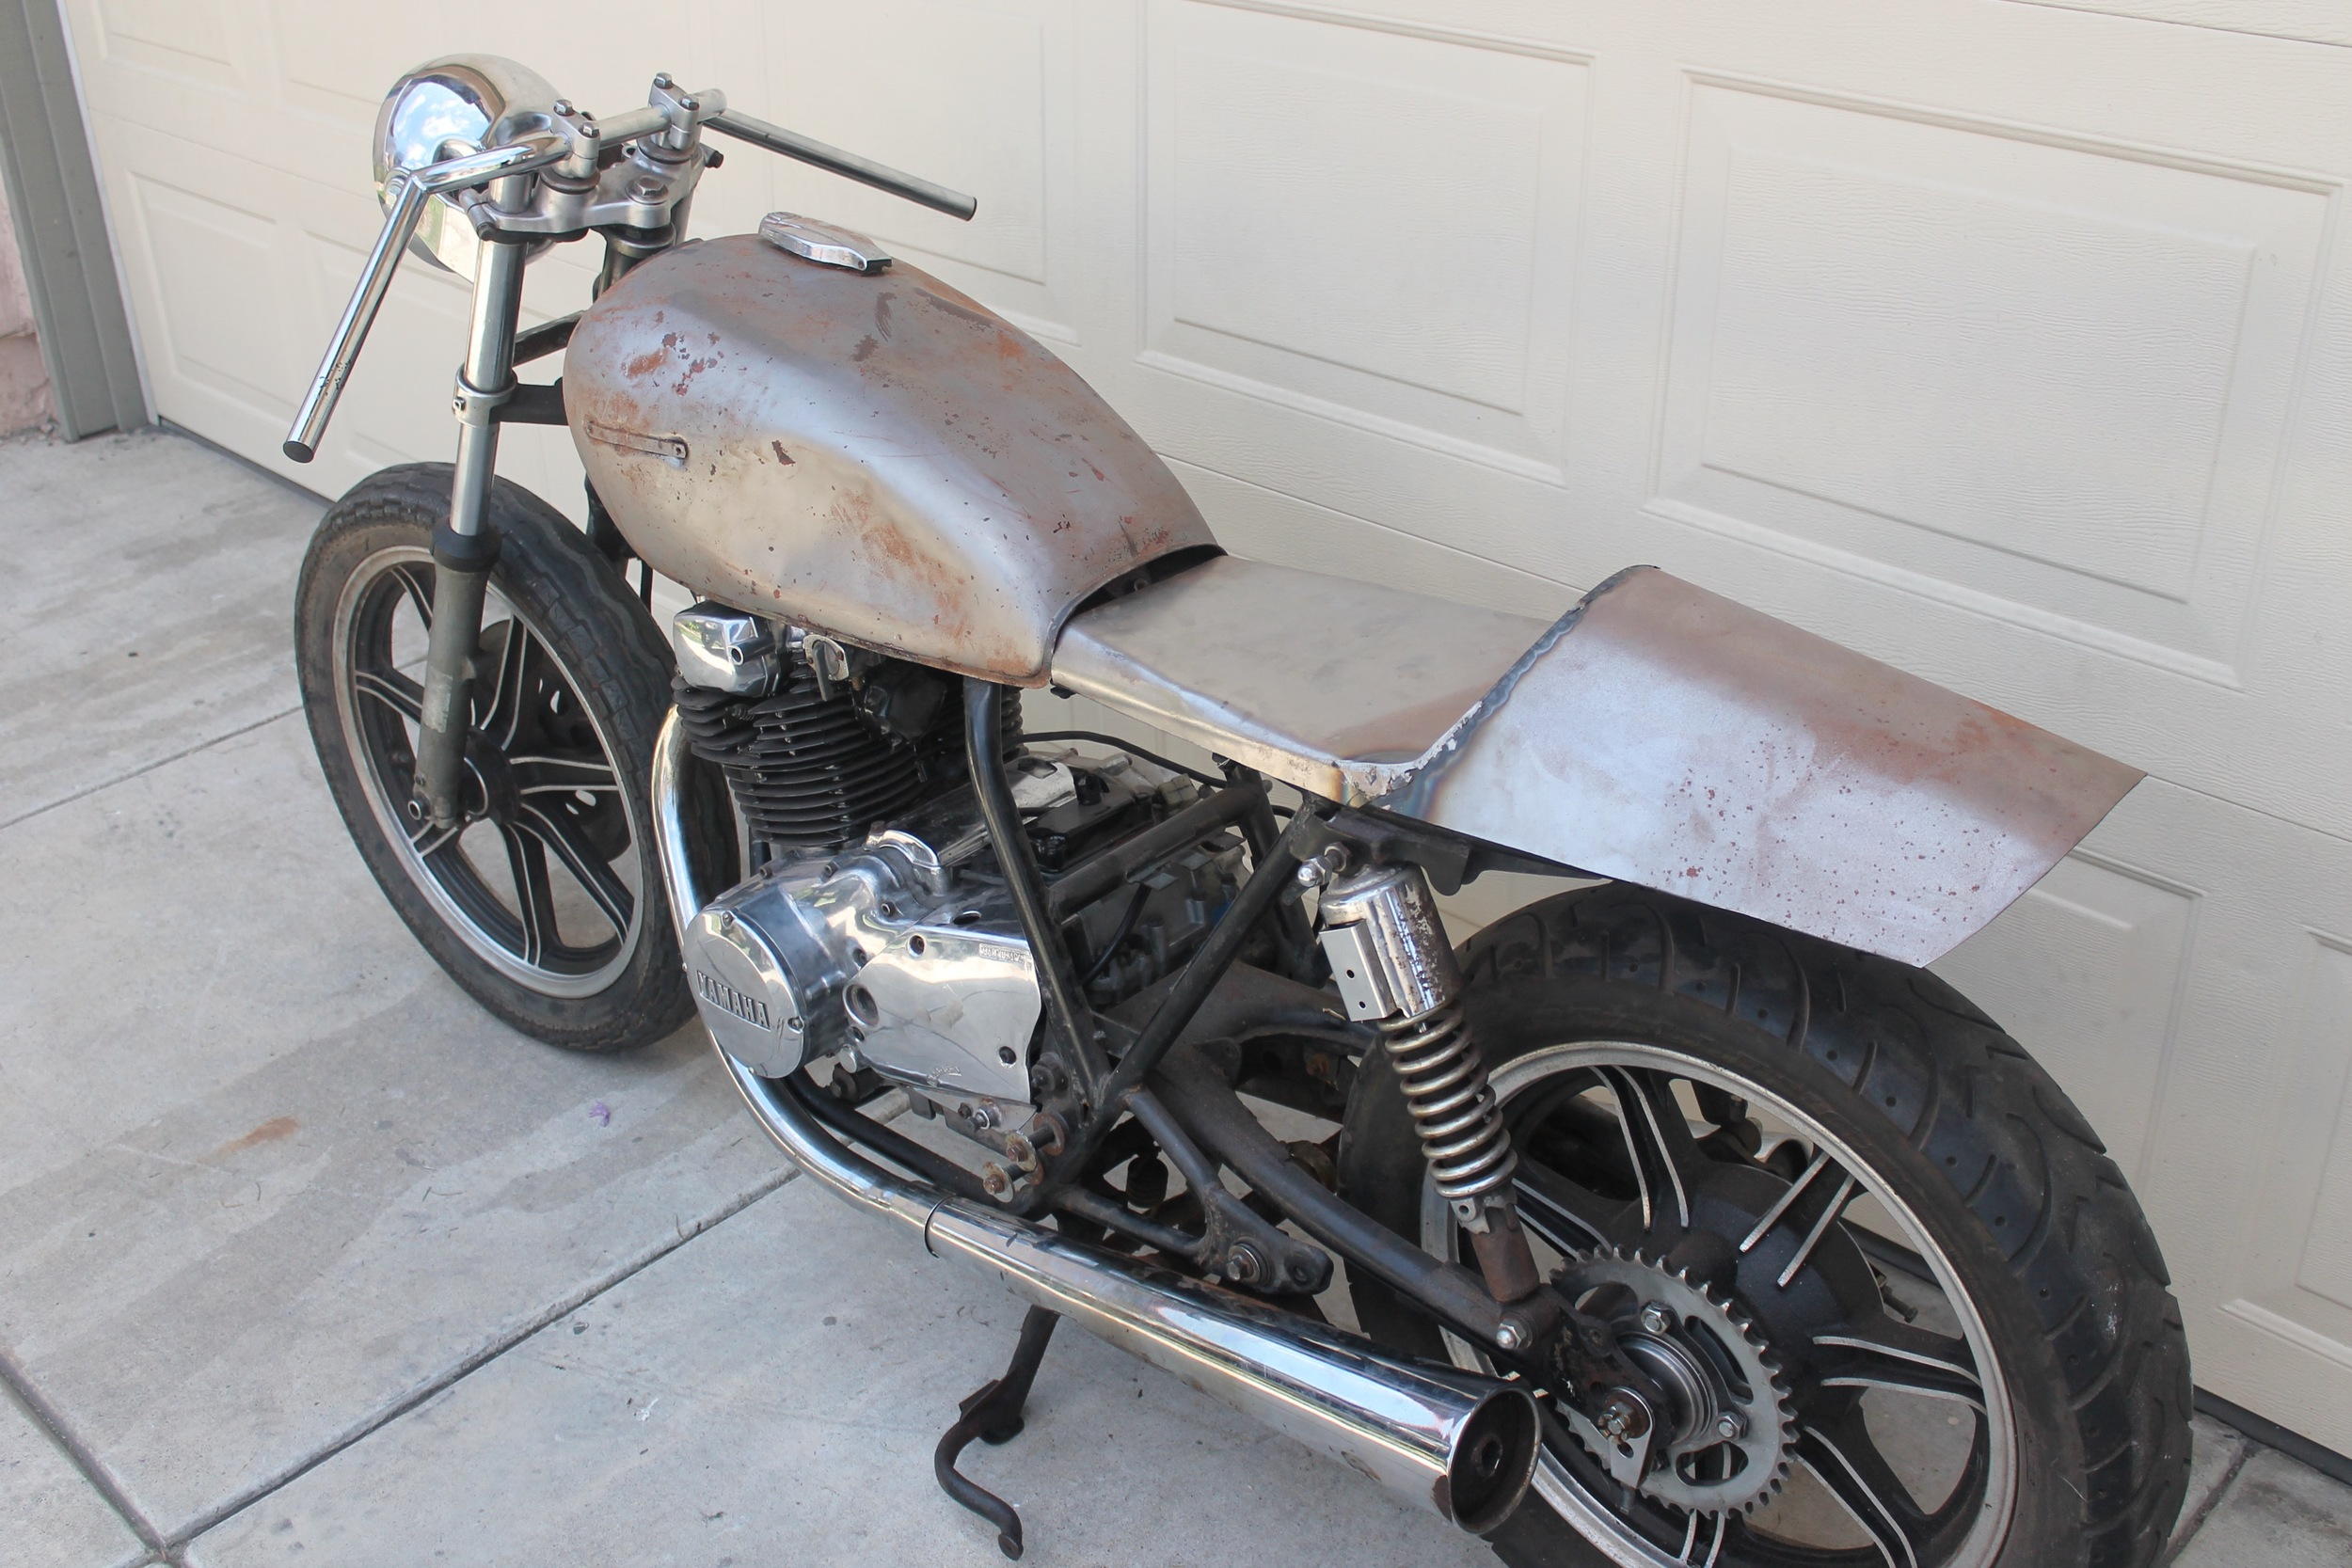 This bike came with two tanks and this custom cafe seat that the seller had yet to finish. At this point in the process, we had yet to decide if this 400cc machine would be a café racer, brat, scrambler, or tracker.